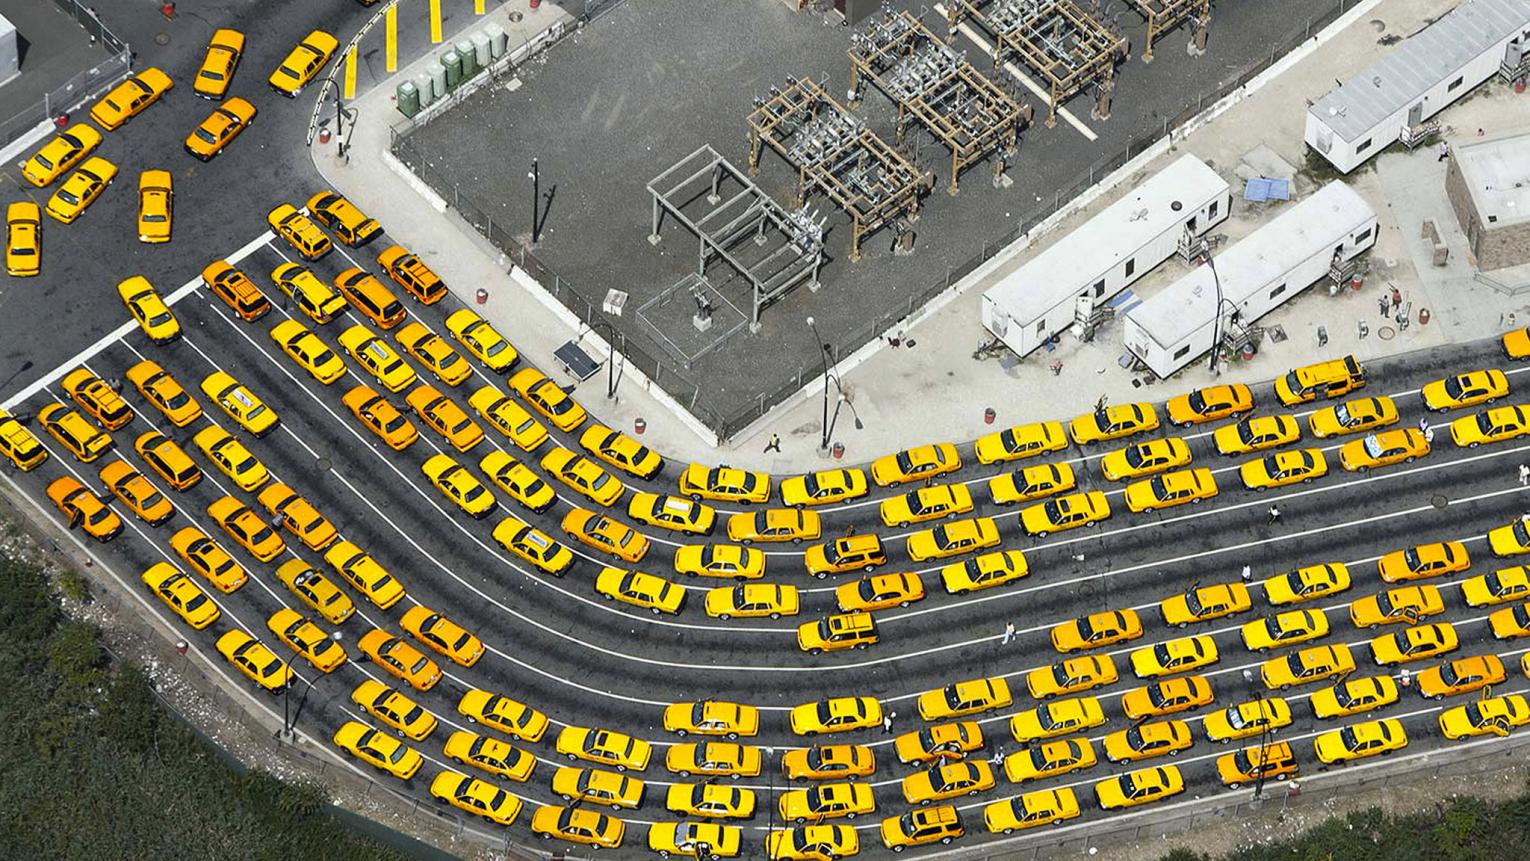 Vibrant yellow taxis stand out from grey surroundings.